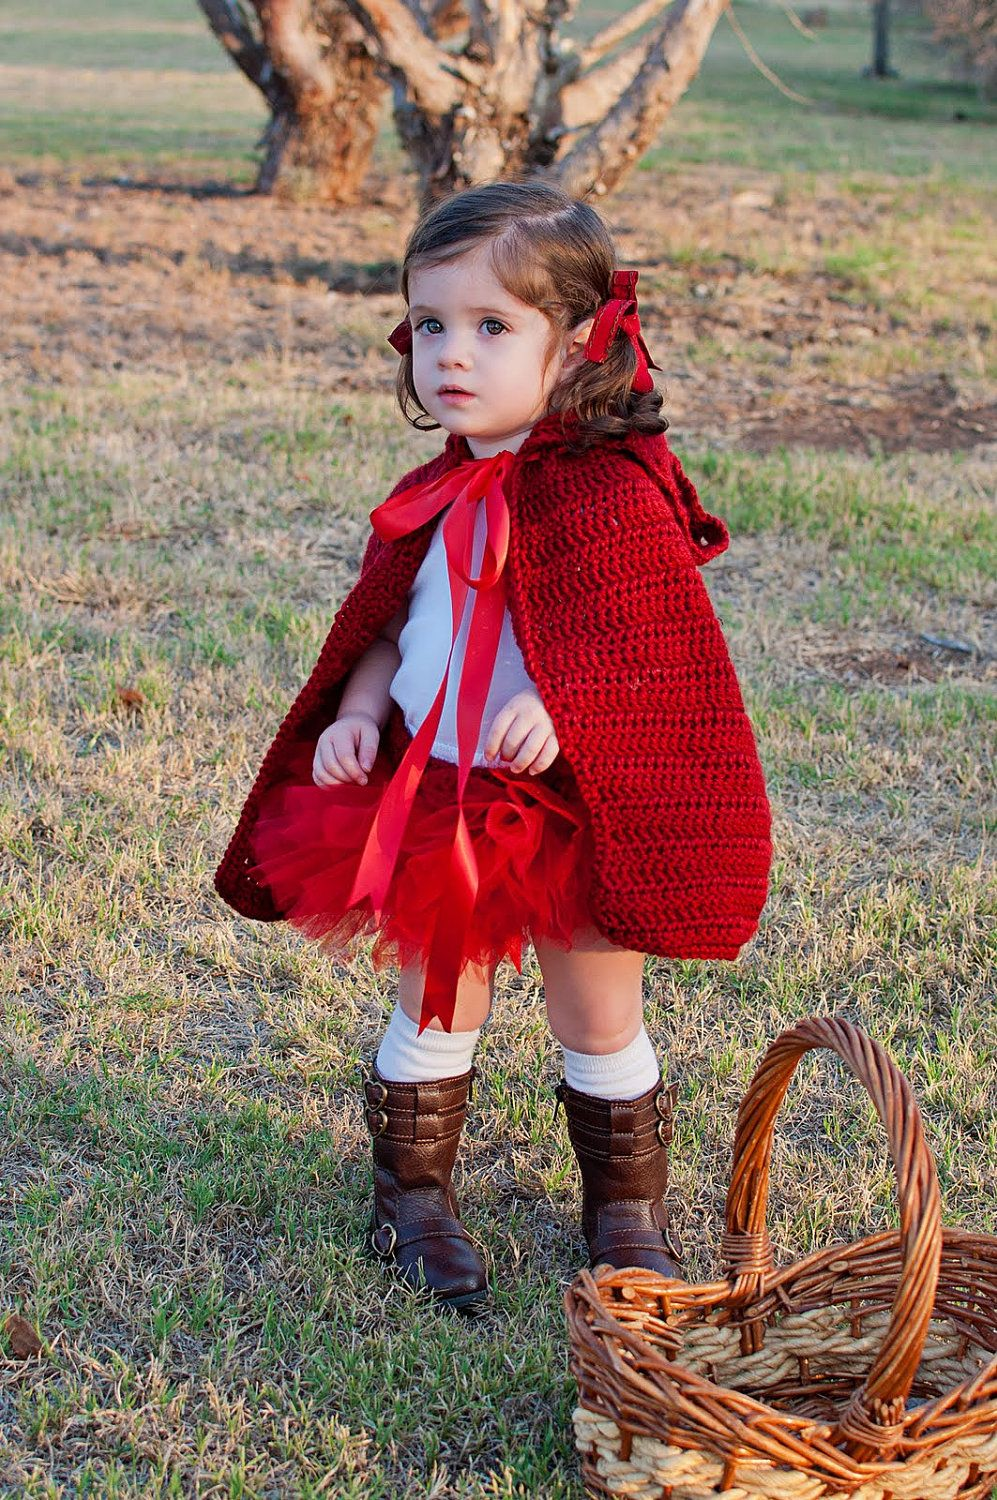 Little Red Riding Hood Costume Halloween Costume Baby Girl Costume Toddler Costume Child Costume -8704